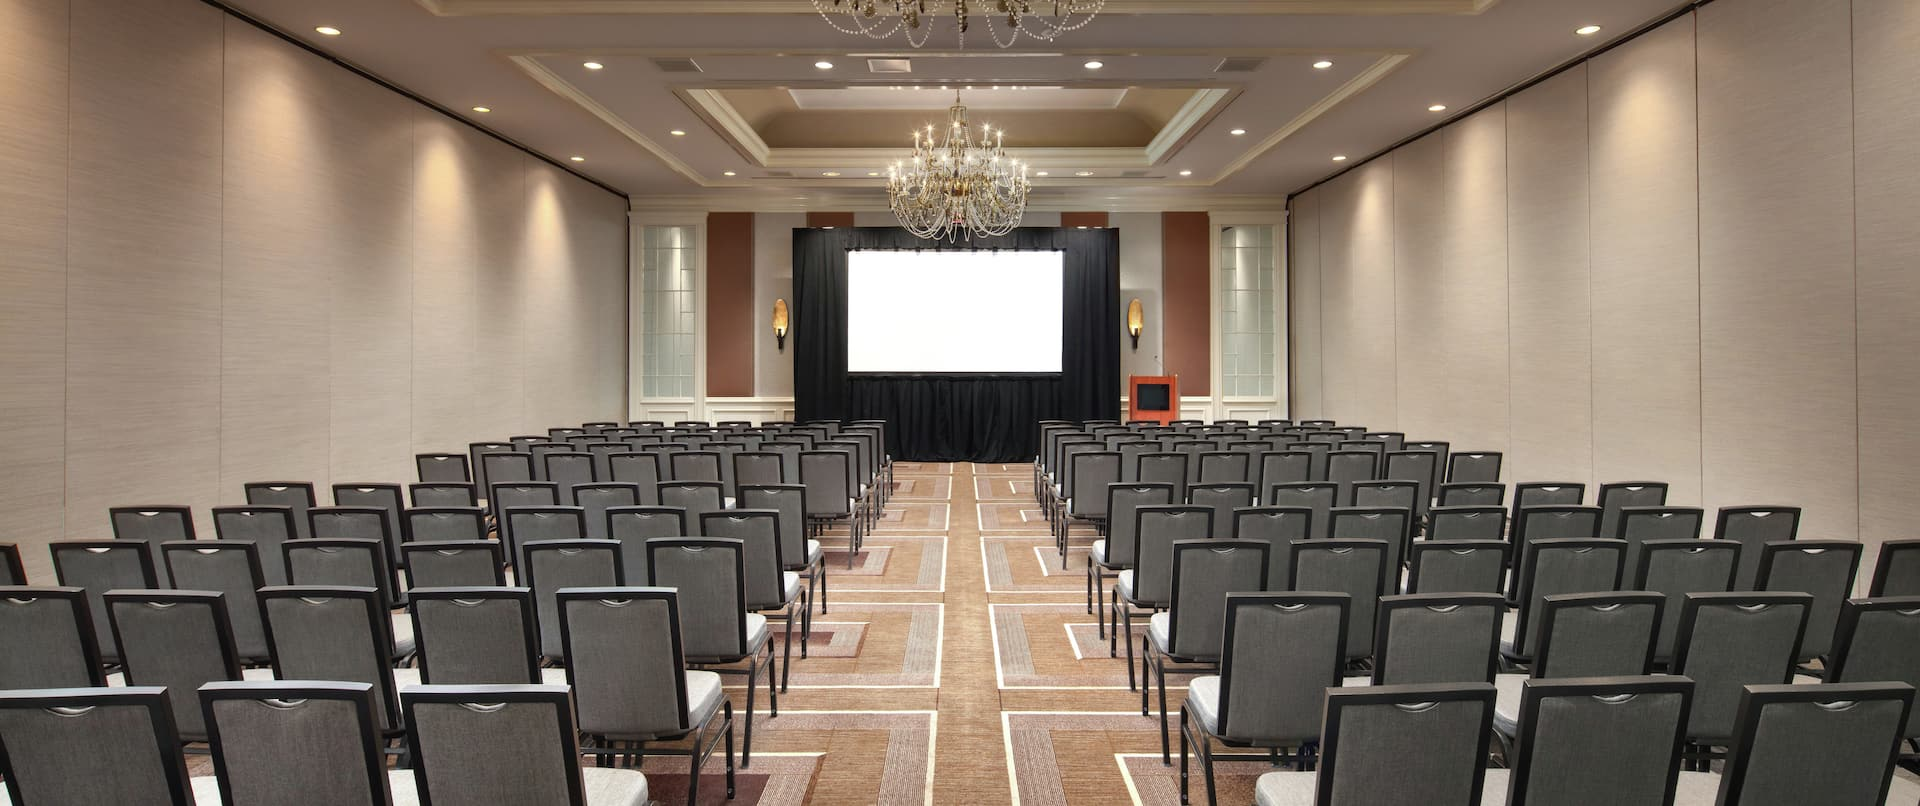 Meeting Room with Theater Setup